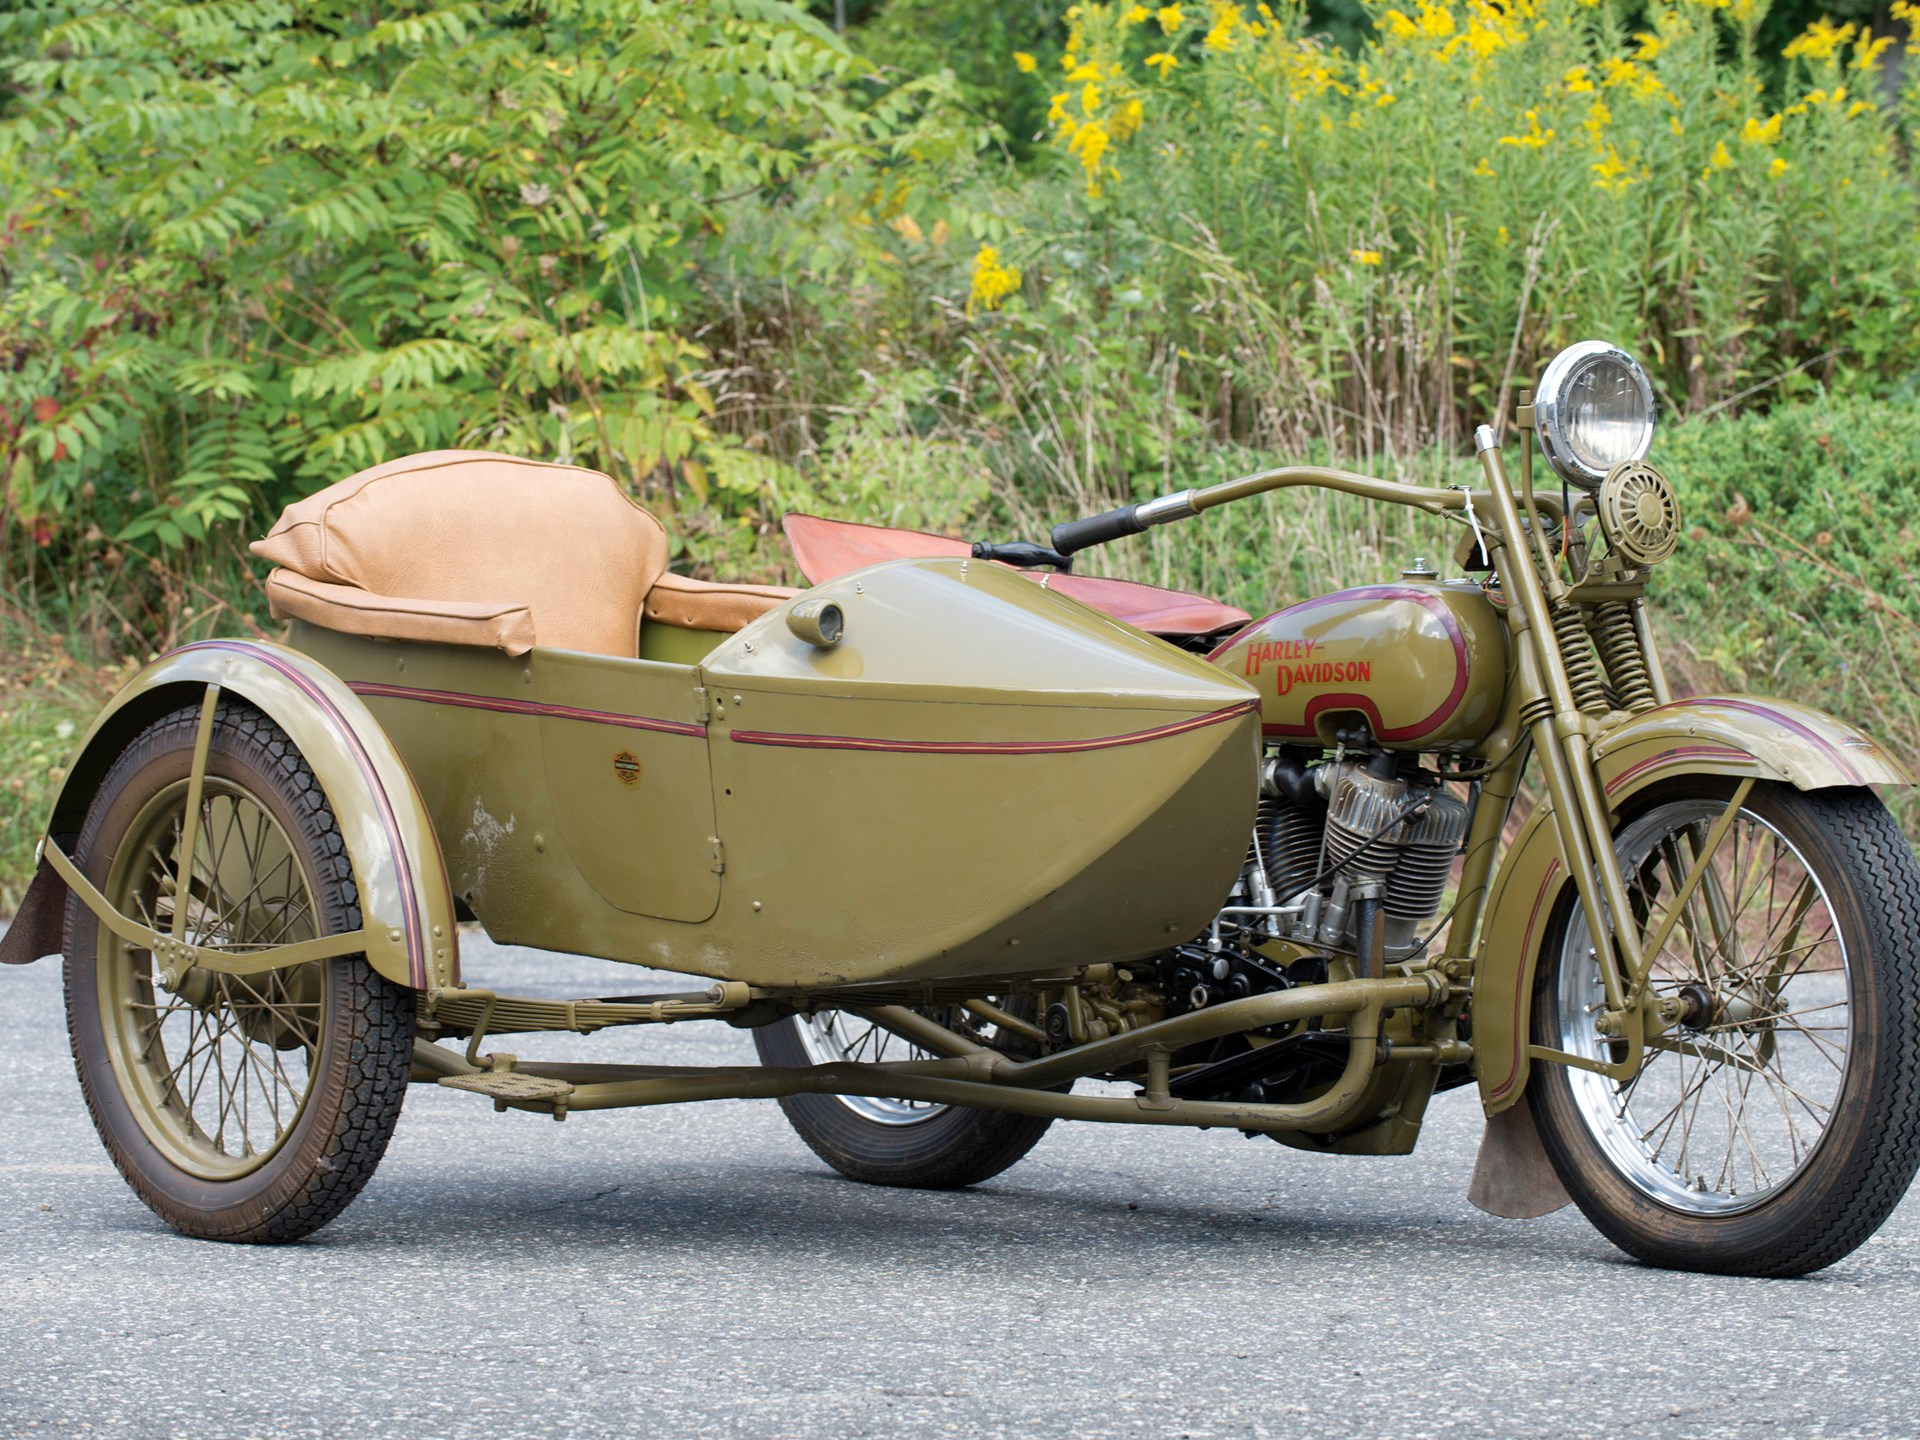 RM Sotheby's - 1925 Harley-Davidson Model JD with Sidecar